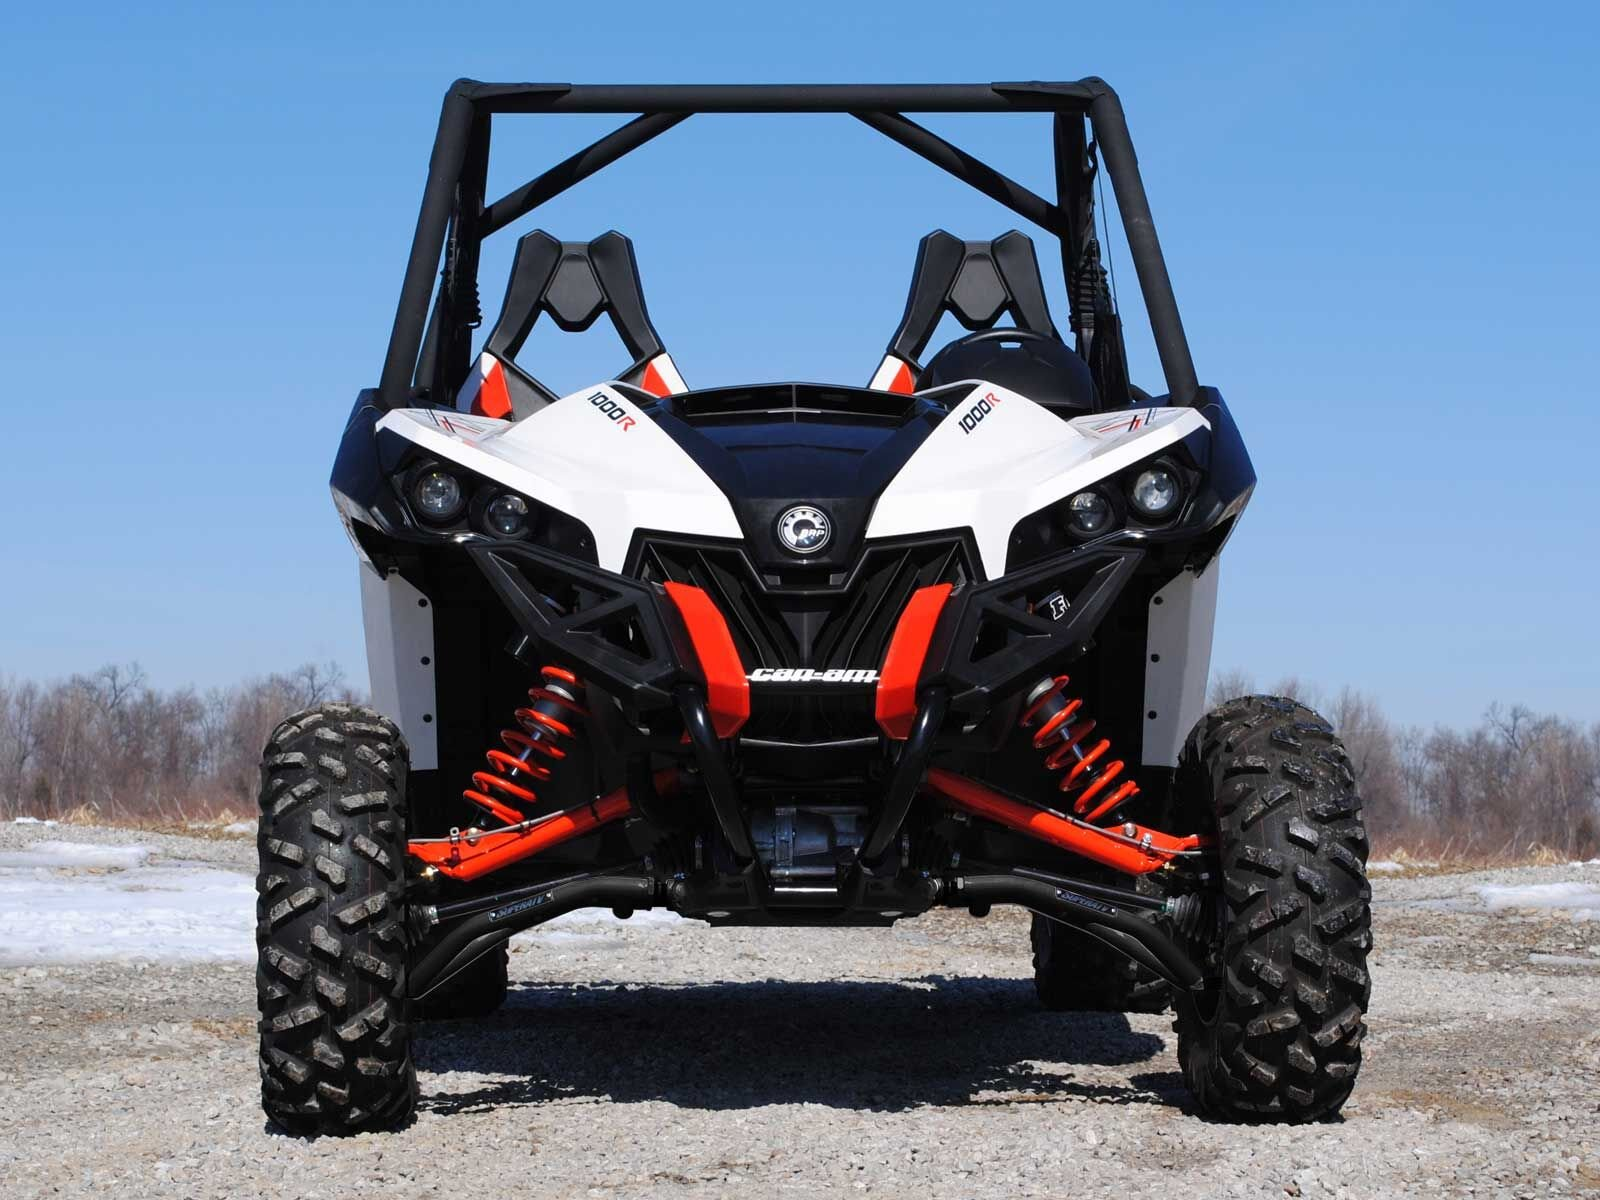 SuperATV High Clearance Front A-Arms for Can-Am Maverick DPS/XMR/XRS/MAX/Turbo (See Fitment) - Black by SuperATV.com (Image #3)